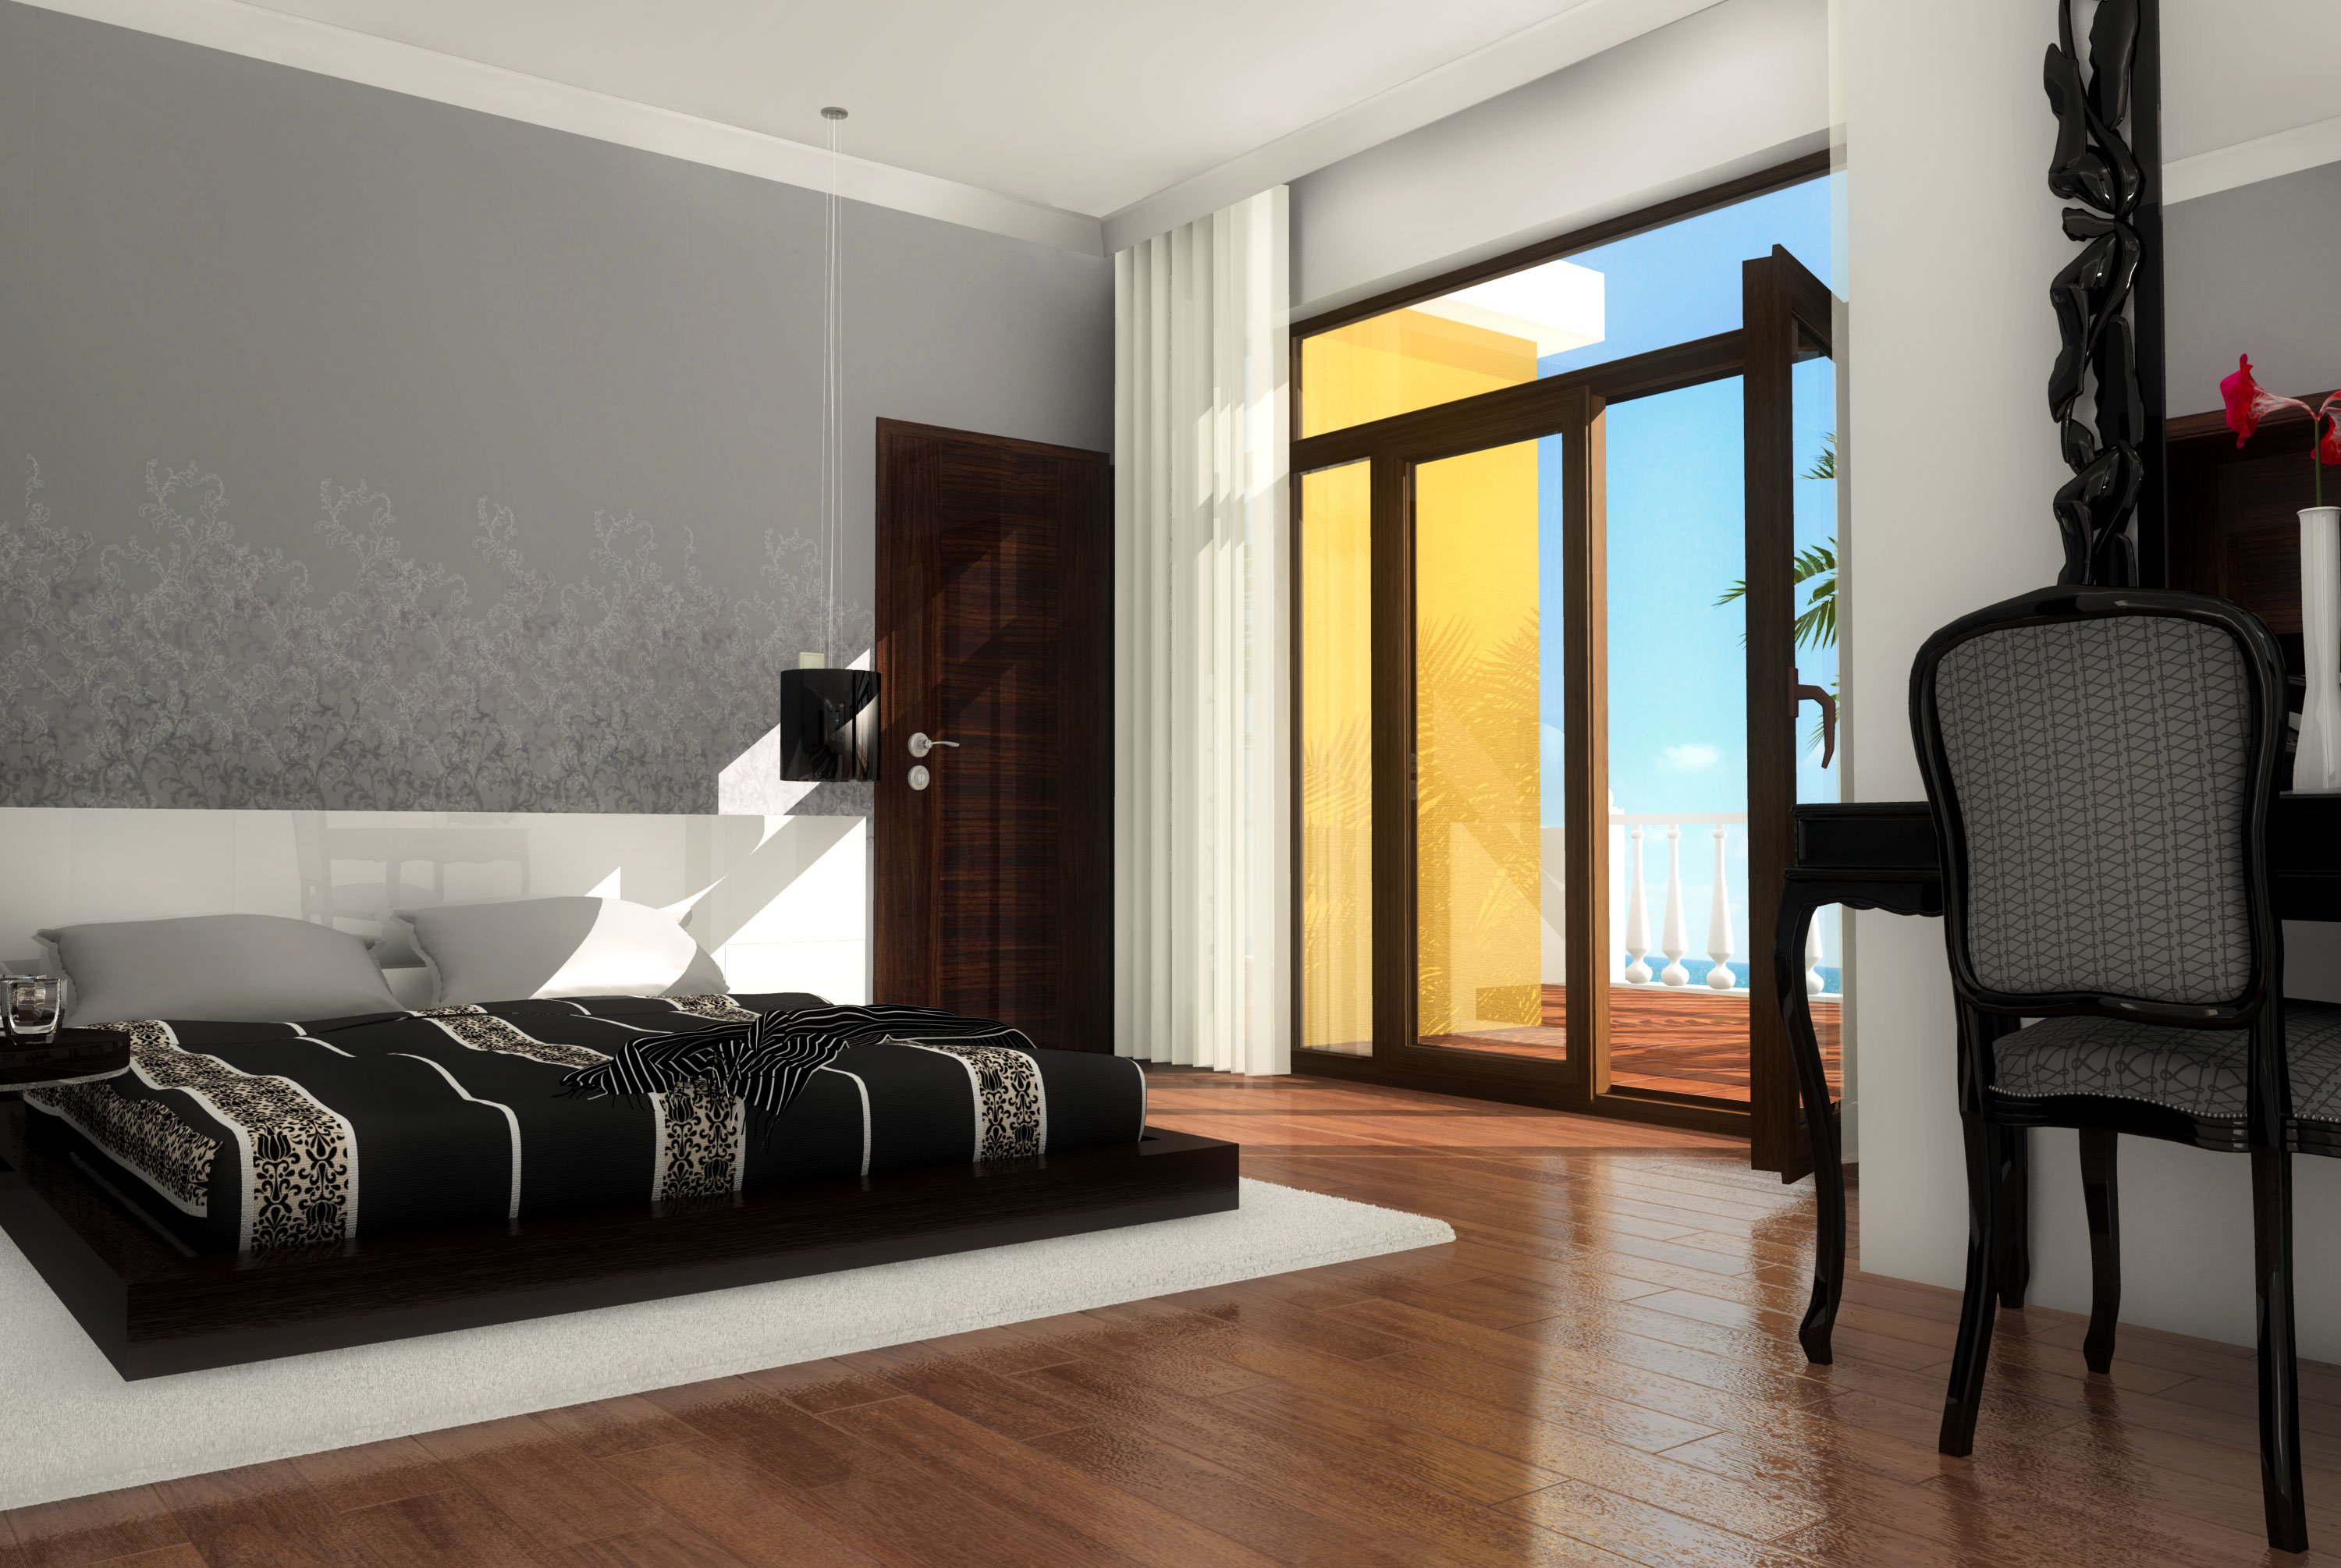 ameublement moderne style en plus investir en bulgarie. Black Bedroom Furniture Sets. Home Design Ideas